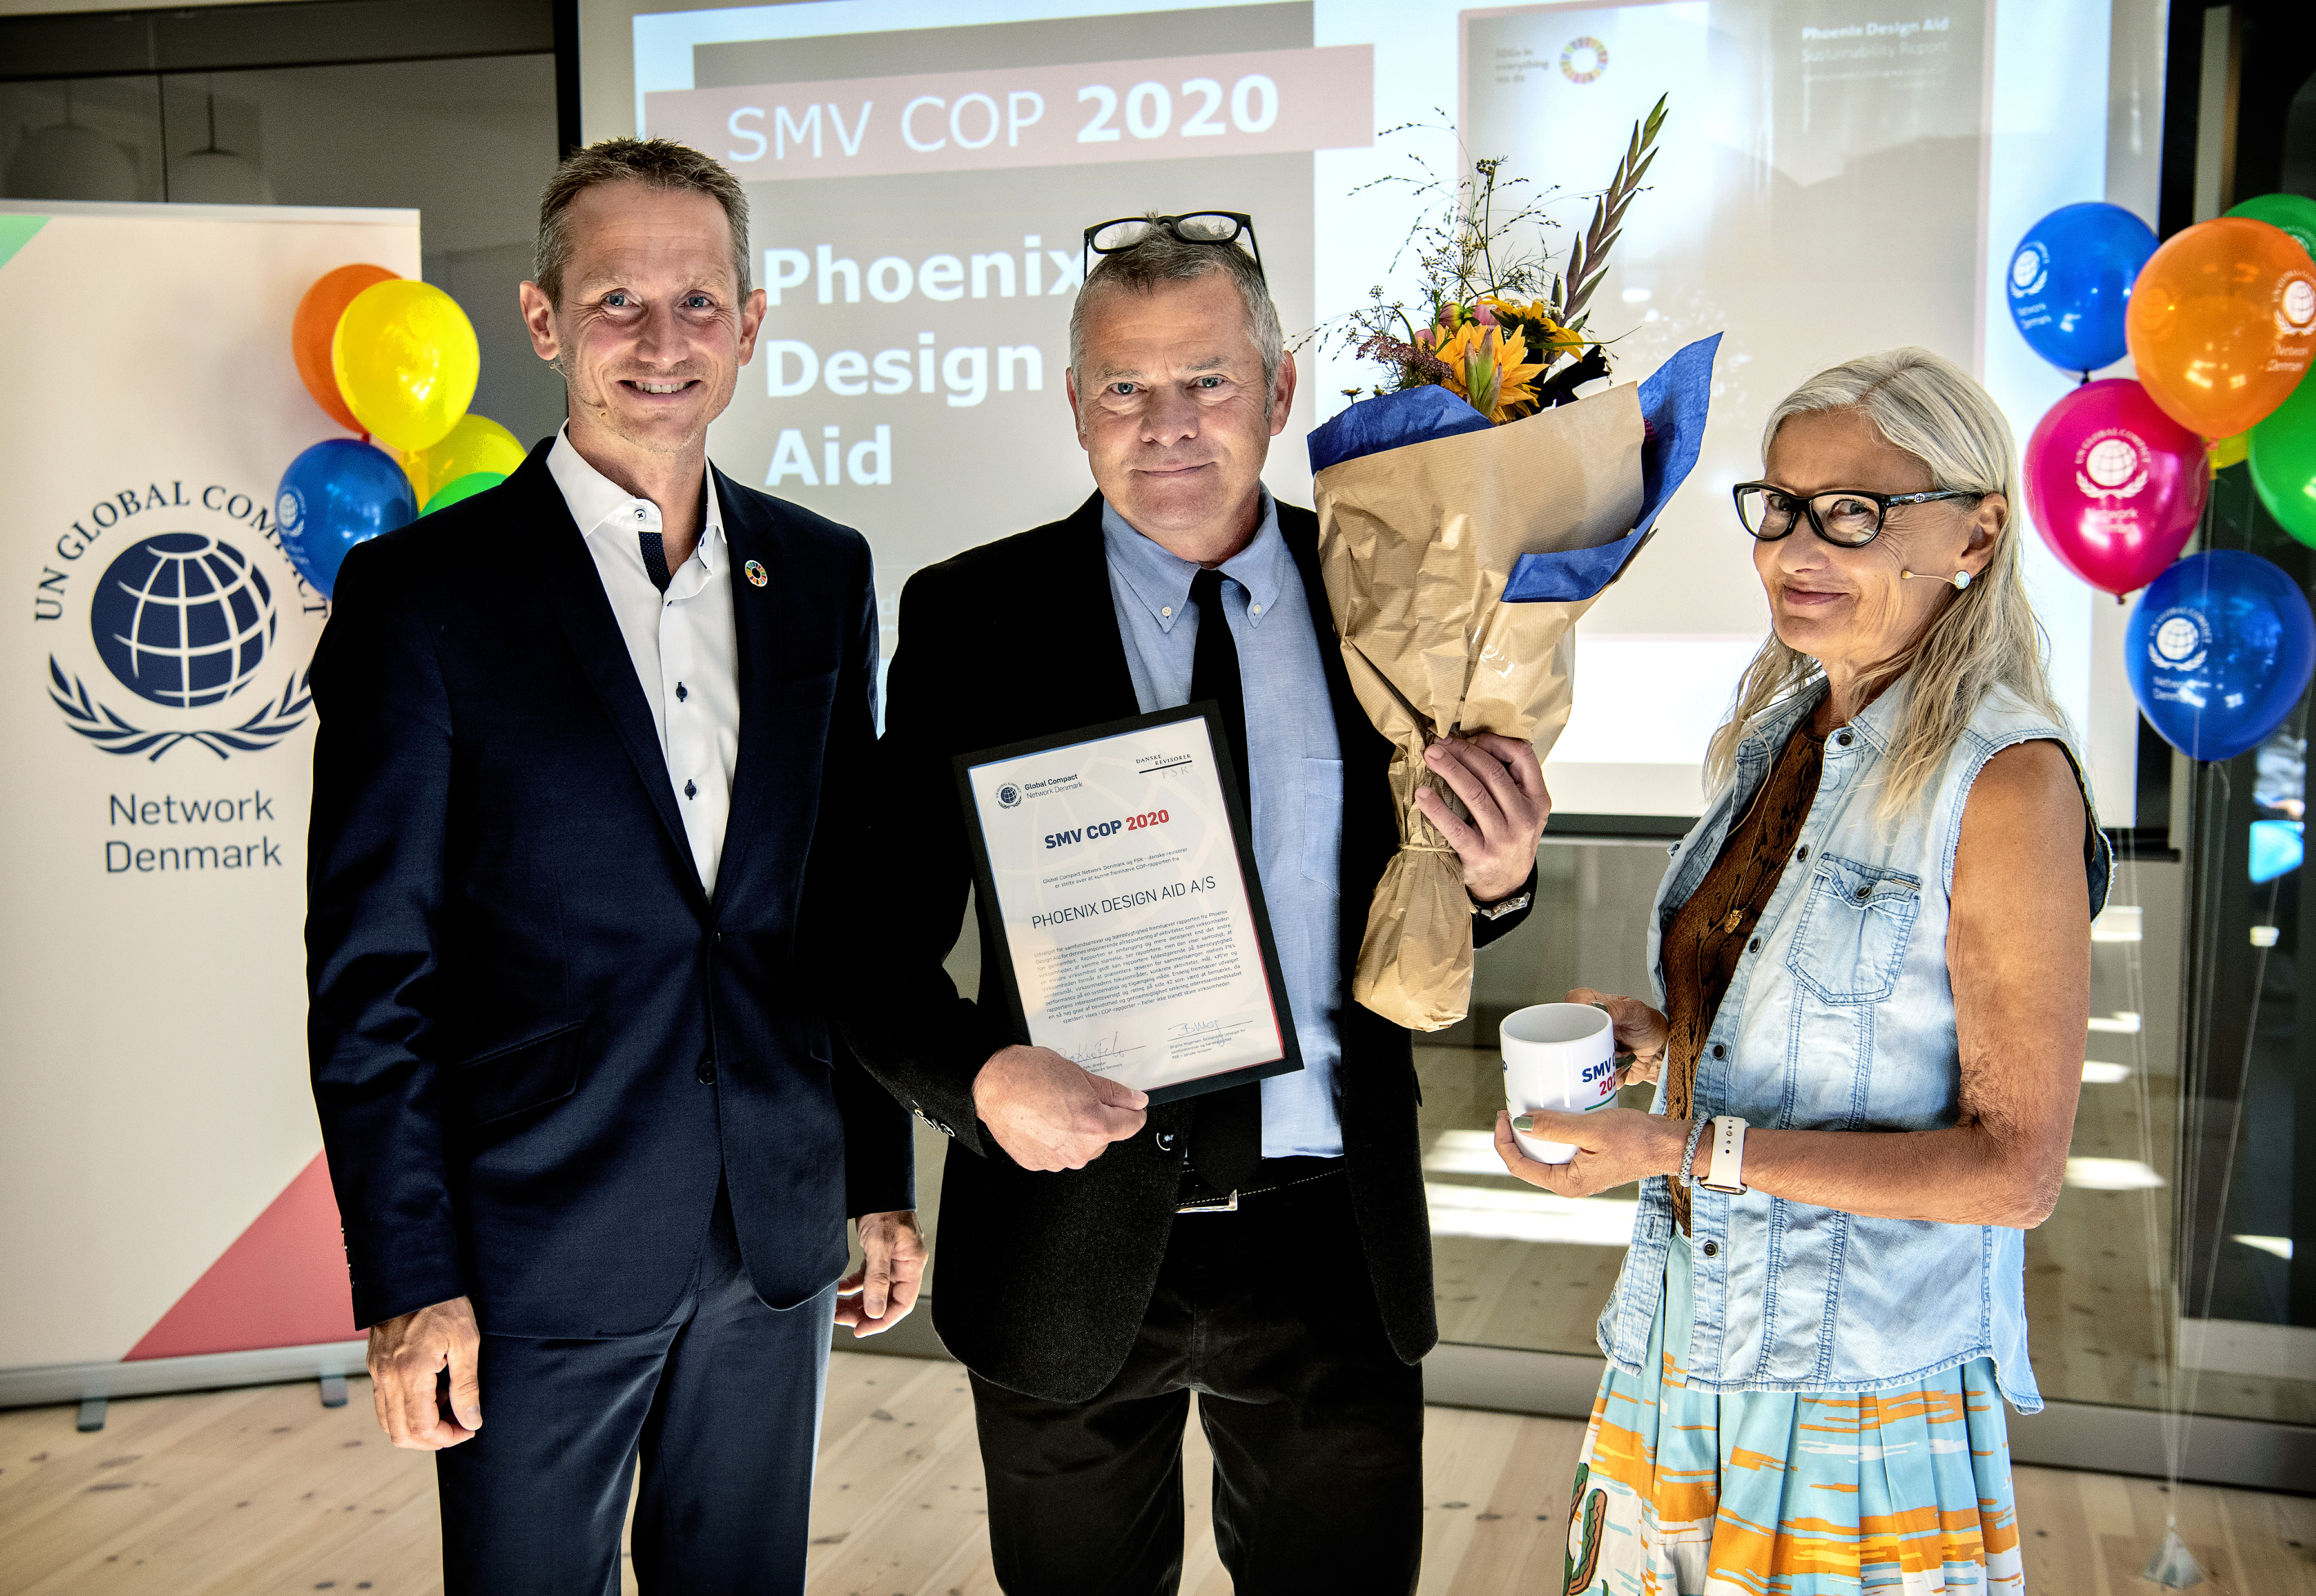 SME COP 2020: Phoenix Design Aid selected as one of Denmark's best